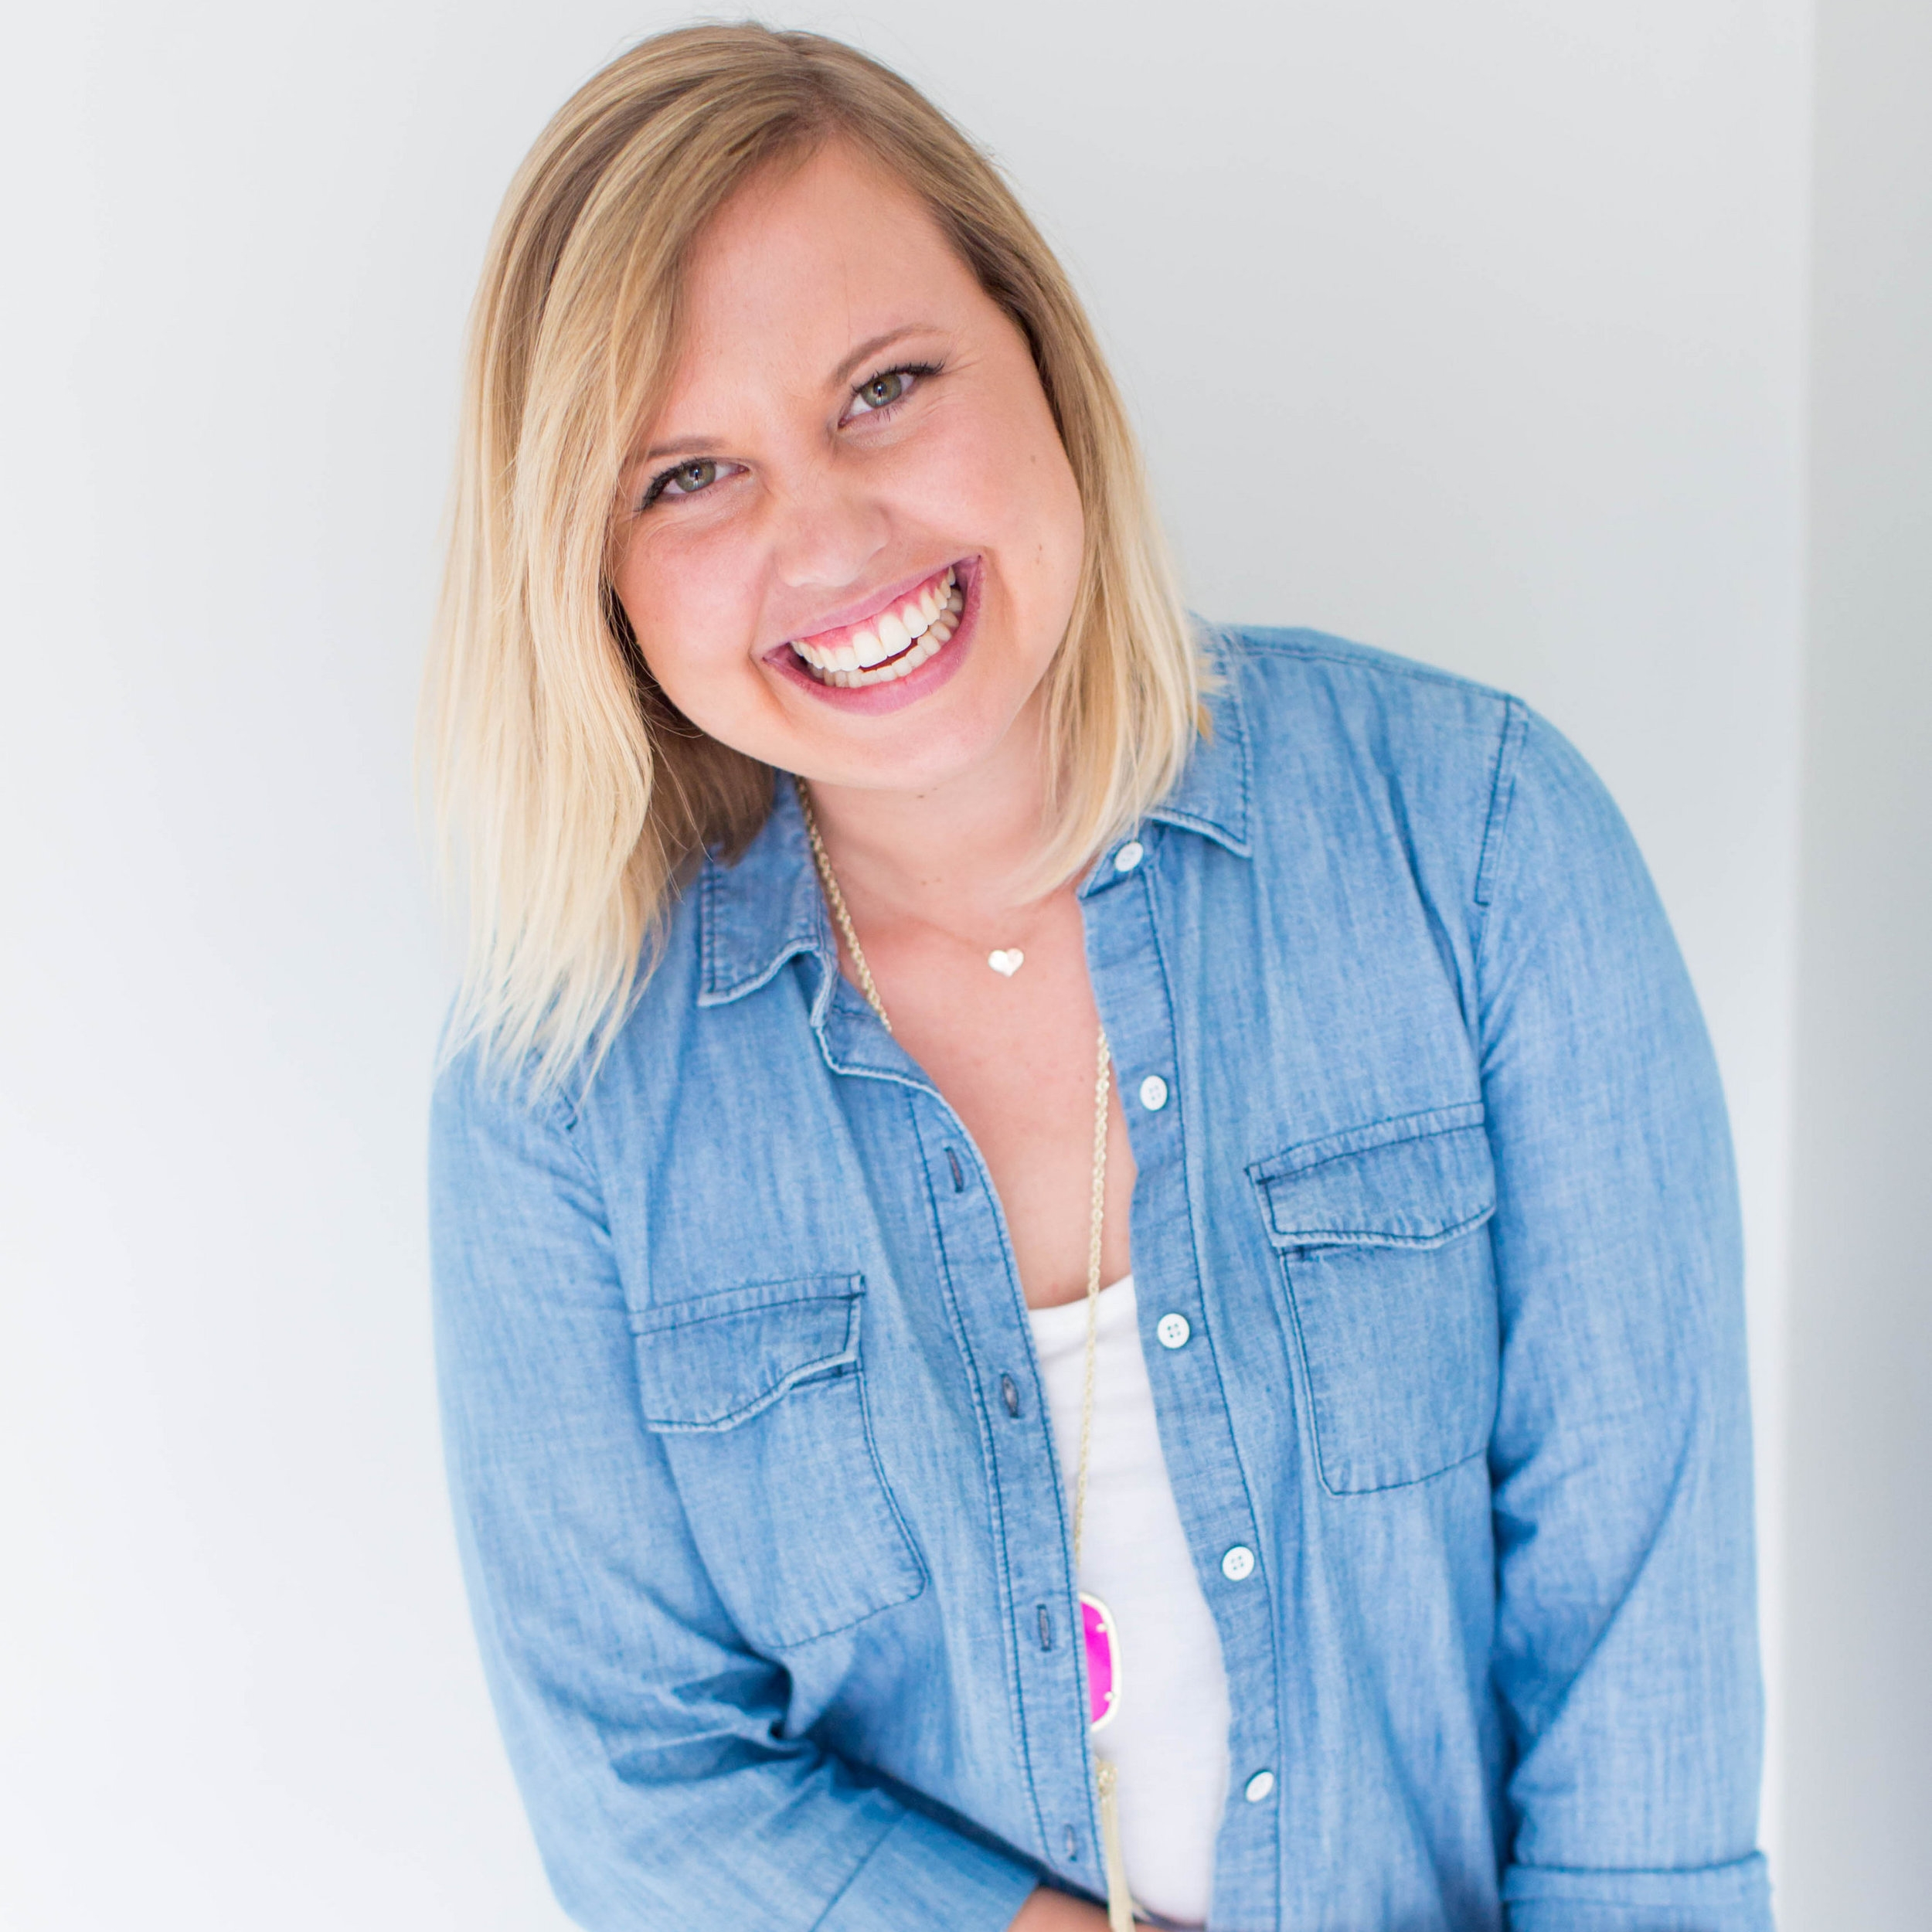 Kat Schmoyer | Dear Sweetheart Events + Creative at Heart Conference   Kat knows how to take those 750392 dreams in your head and turn at least 1 of them into reality. We can't WAIT for you to hear what she has to share about monetizing your brand!